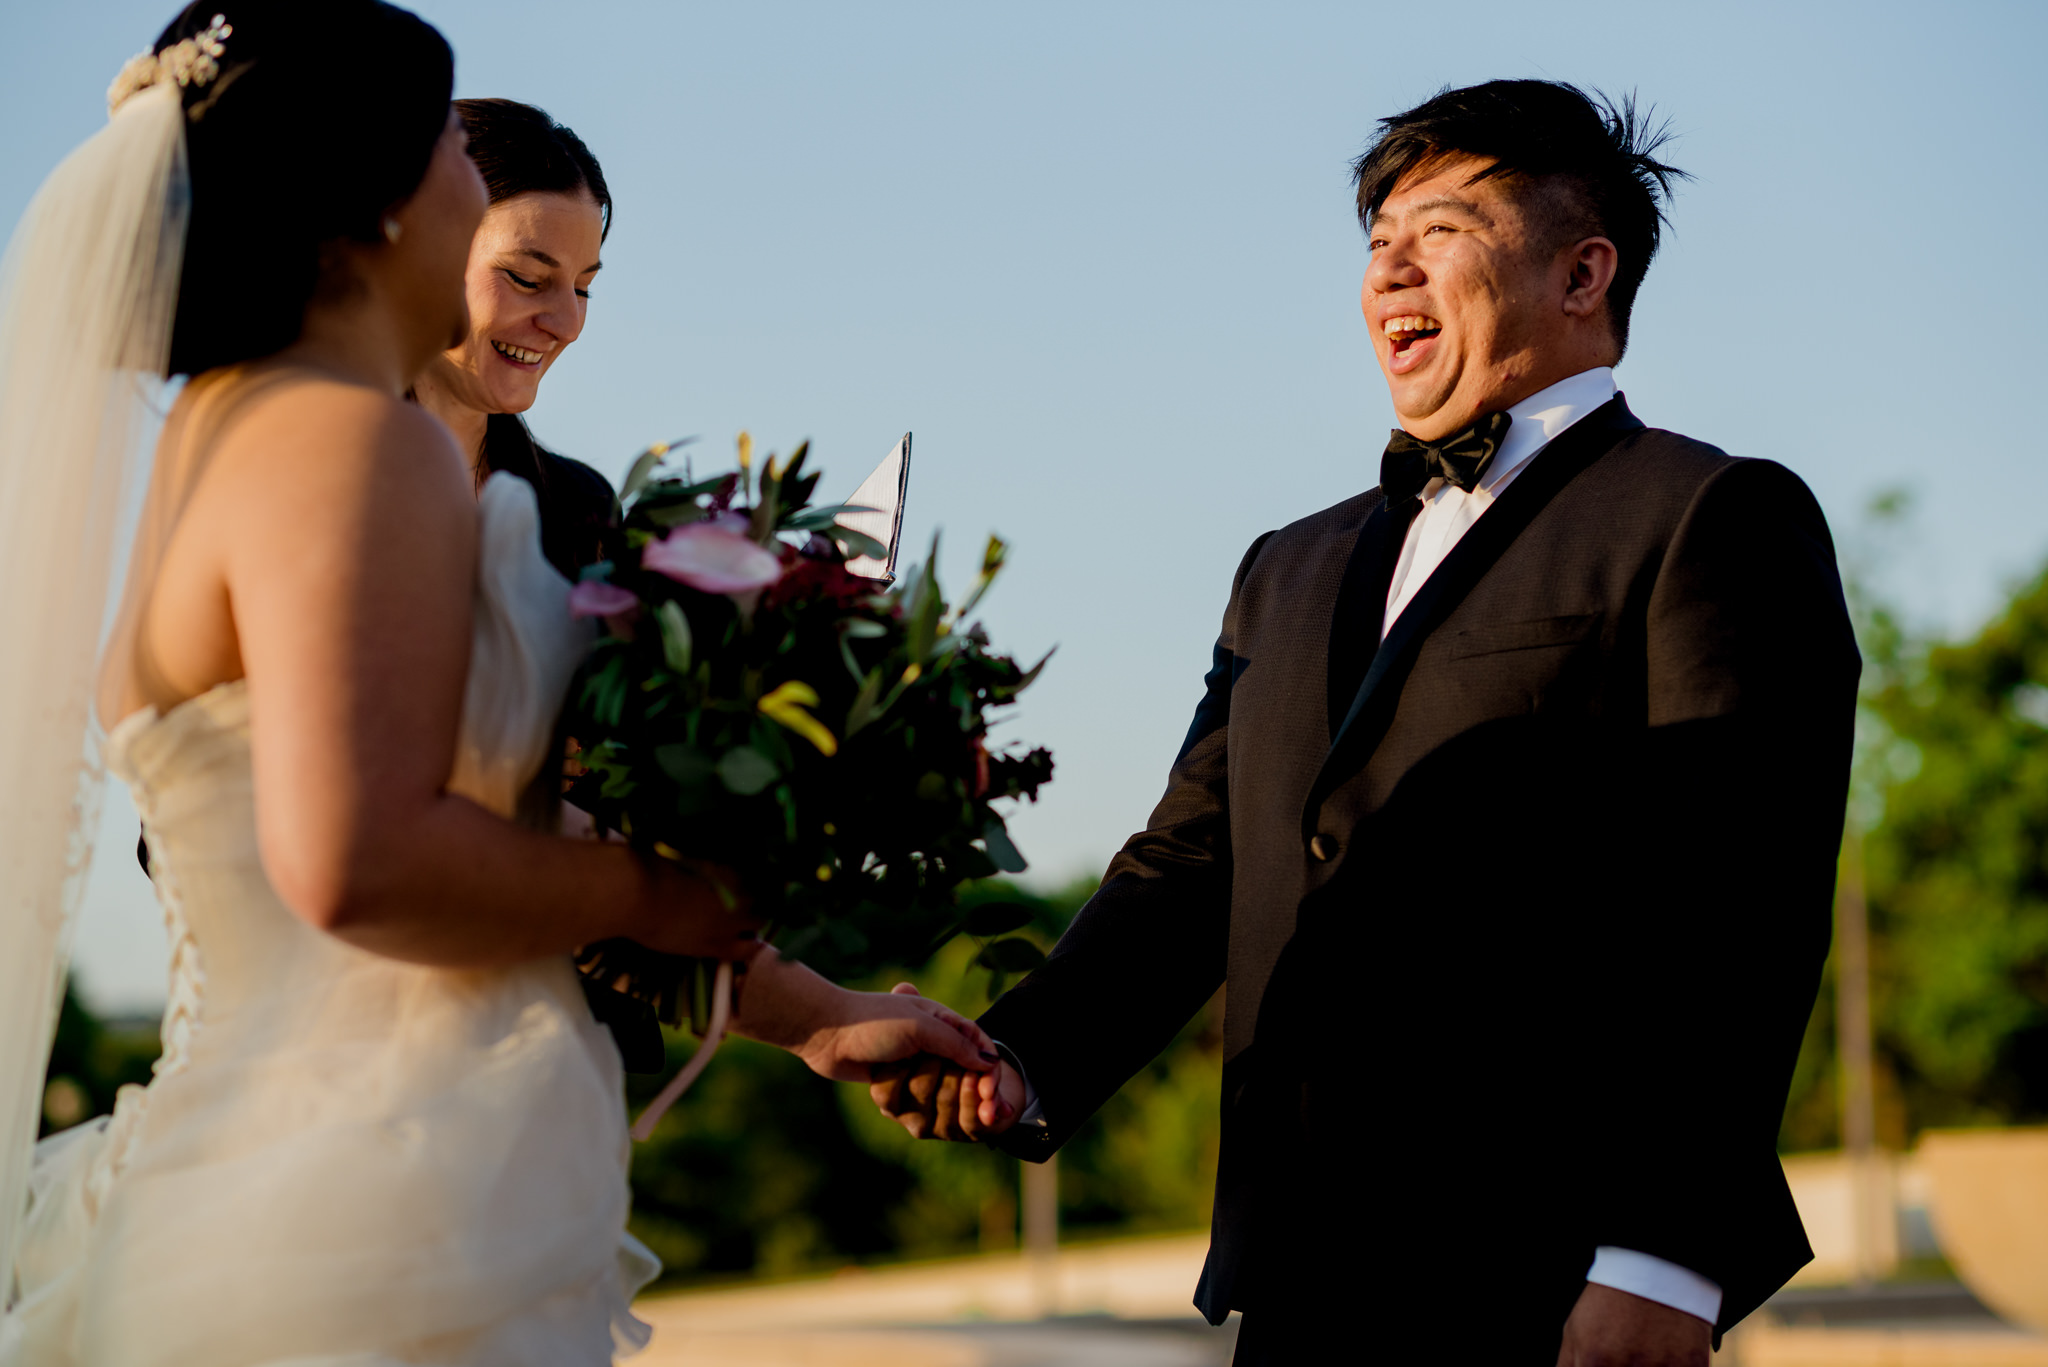 A groom laughs during his wedding ceremony.